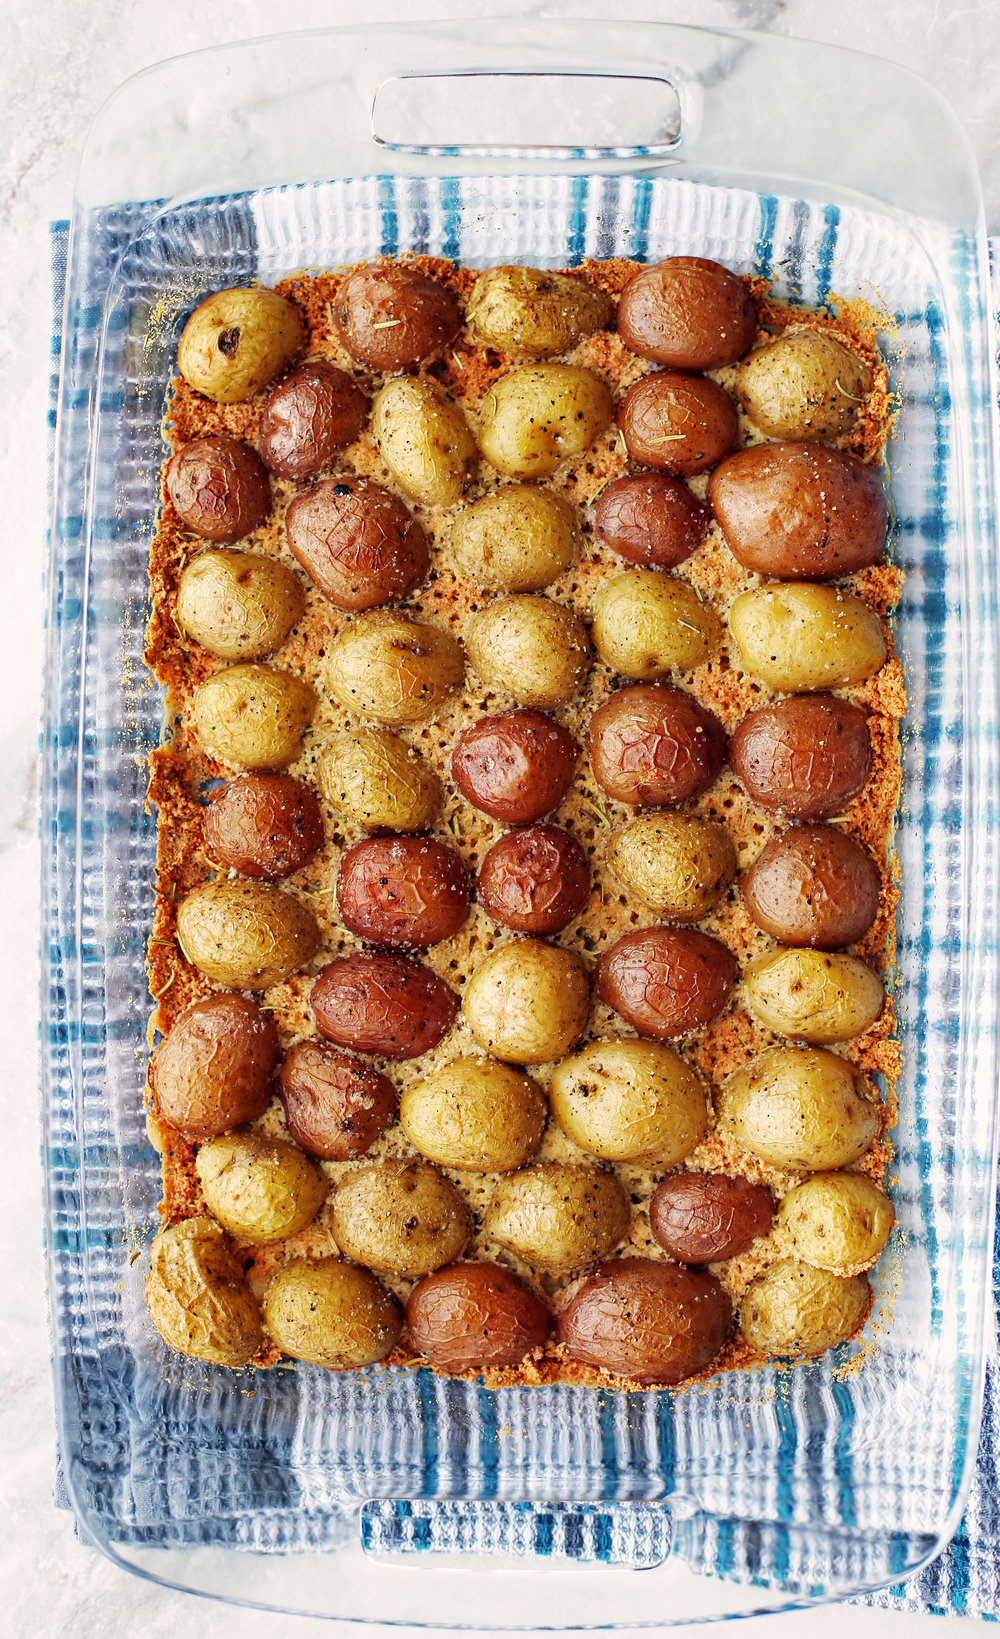 Baked Crispy Parmesan Crusted Baby Potatoes in a single layer in a glass casserole dish.